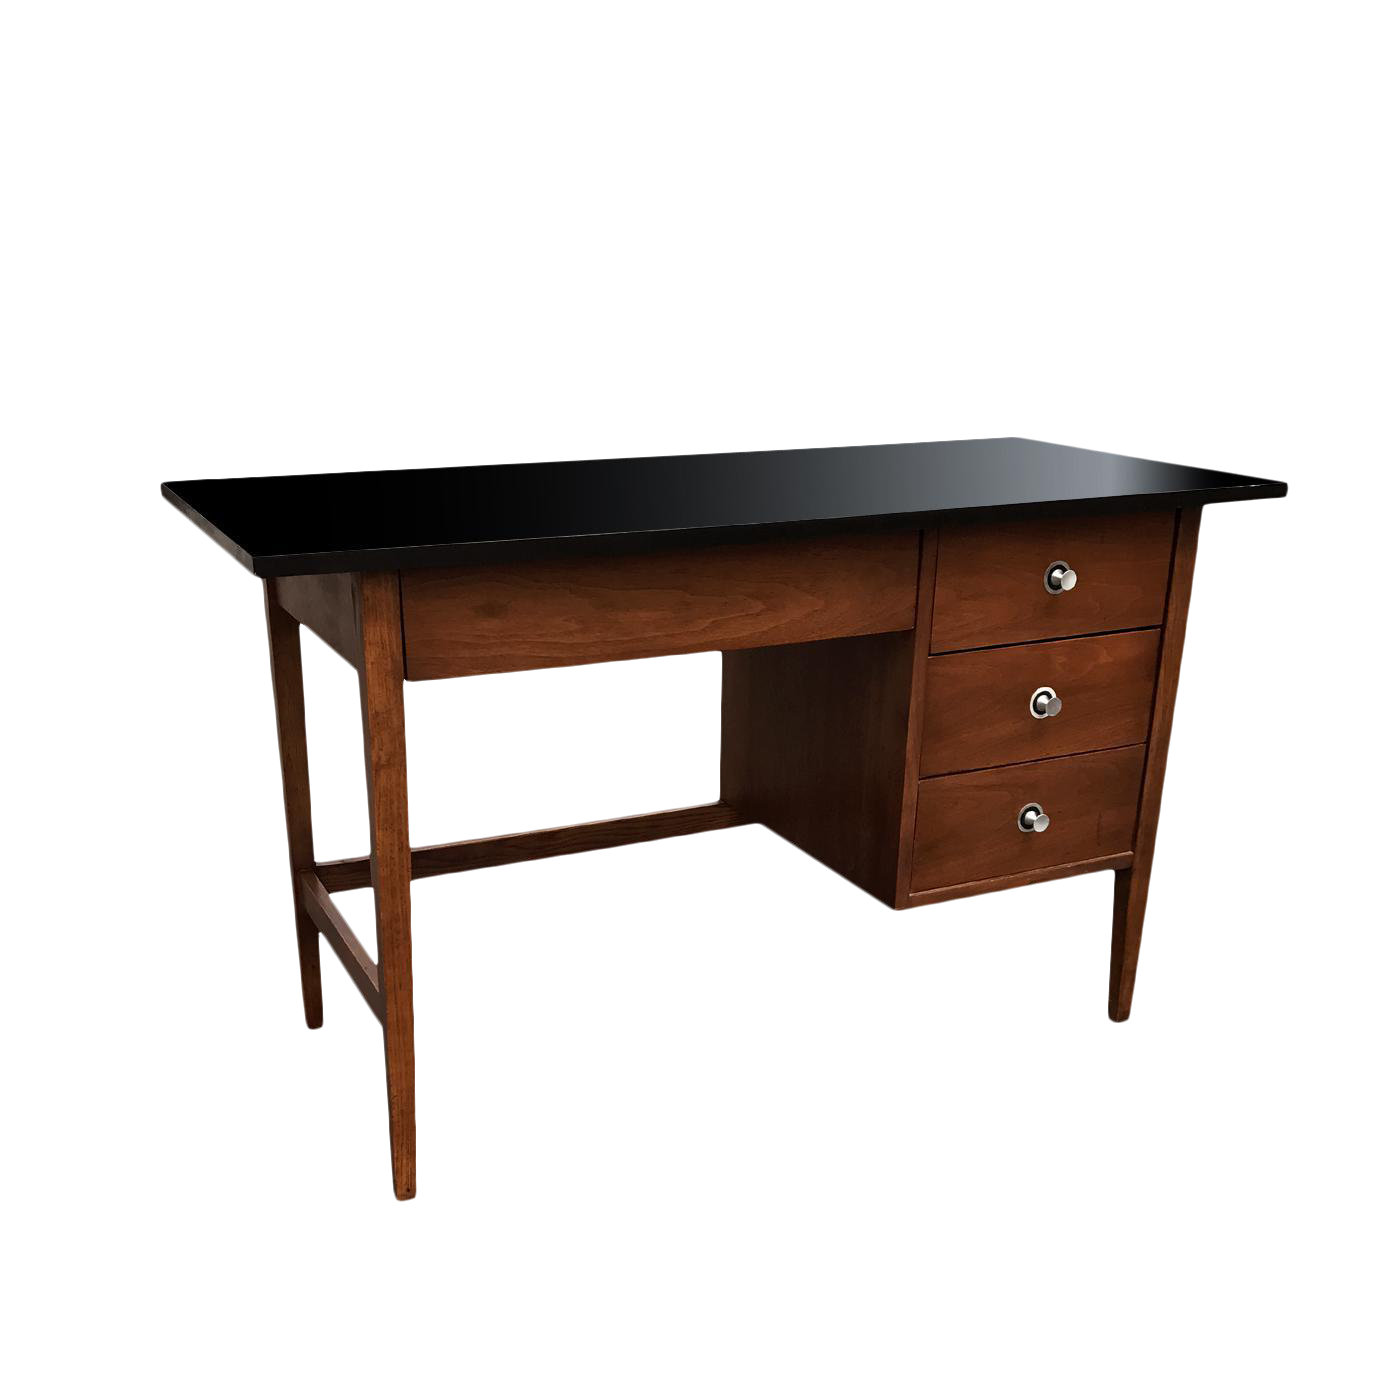 1960s Mid Century Modern Desk By Stanley This Desk Features 1 Drawer On Top And 3 Drawers On The Right Good Vintage Mid Century Modern Desk Modern Desk Desk